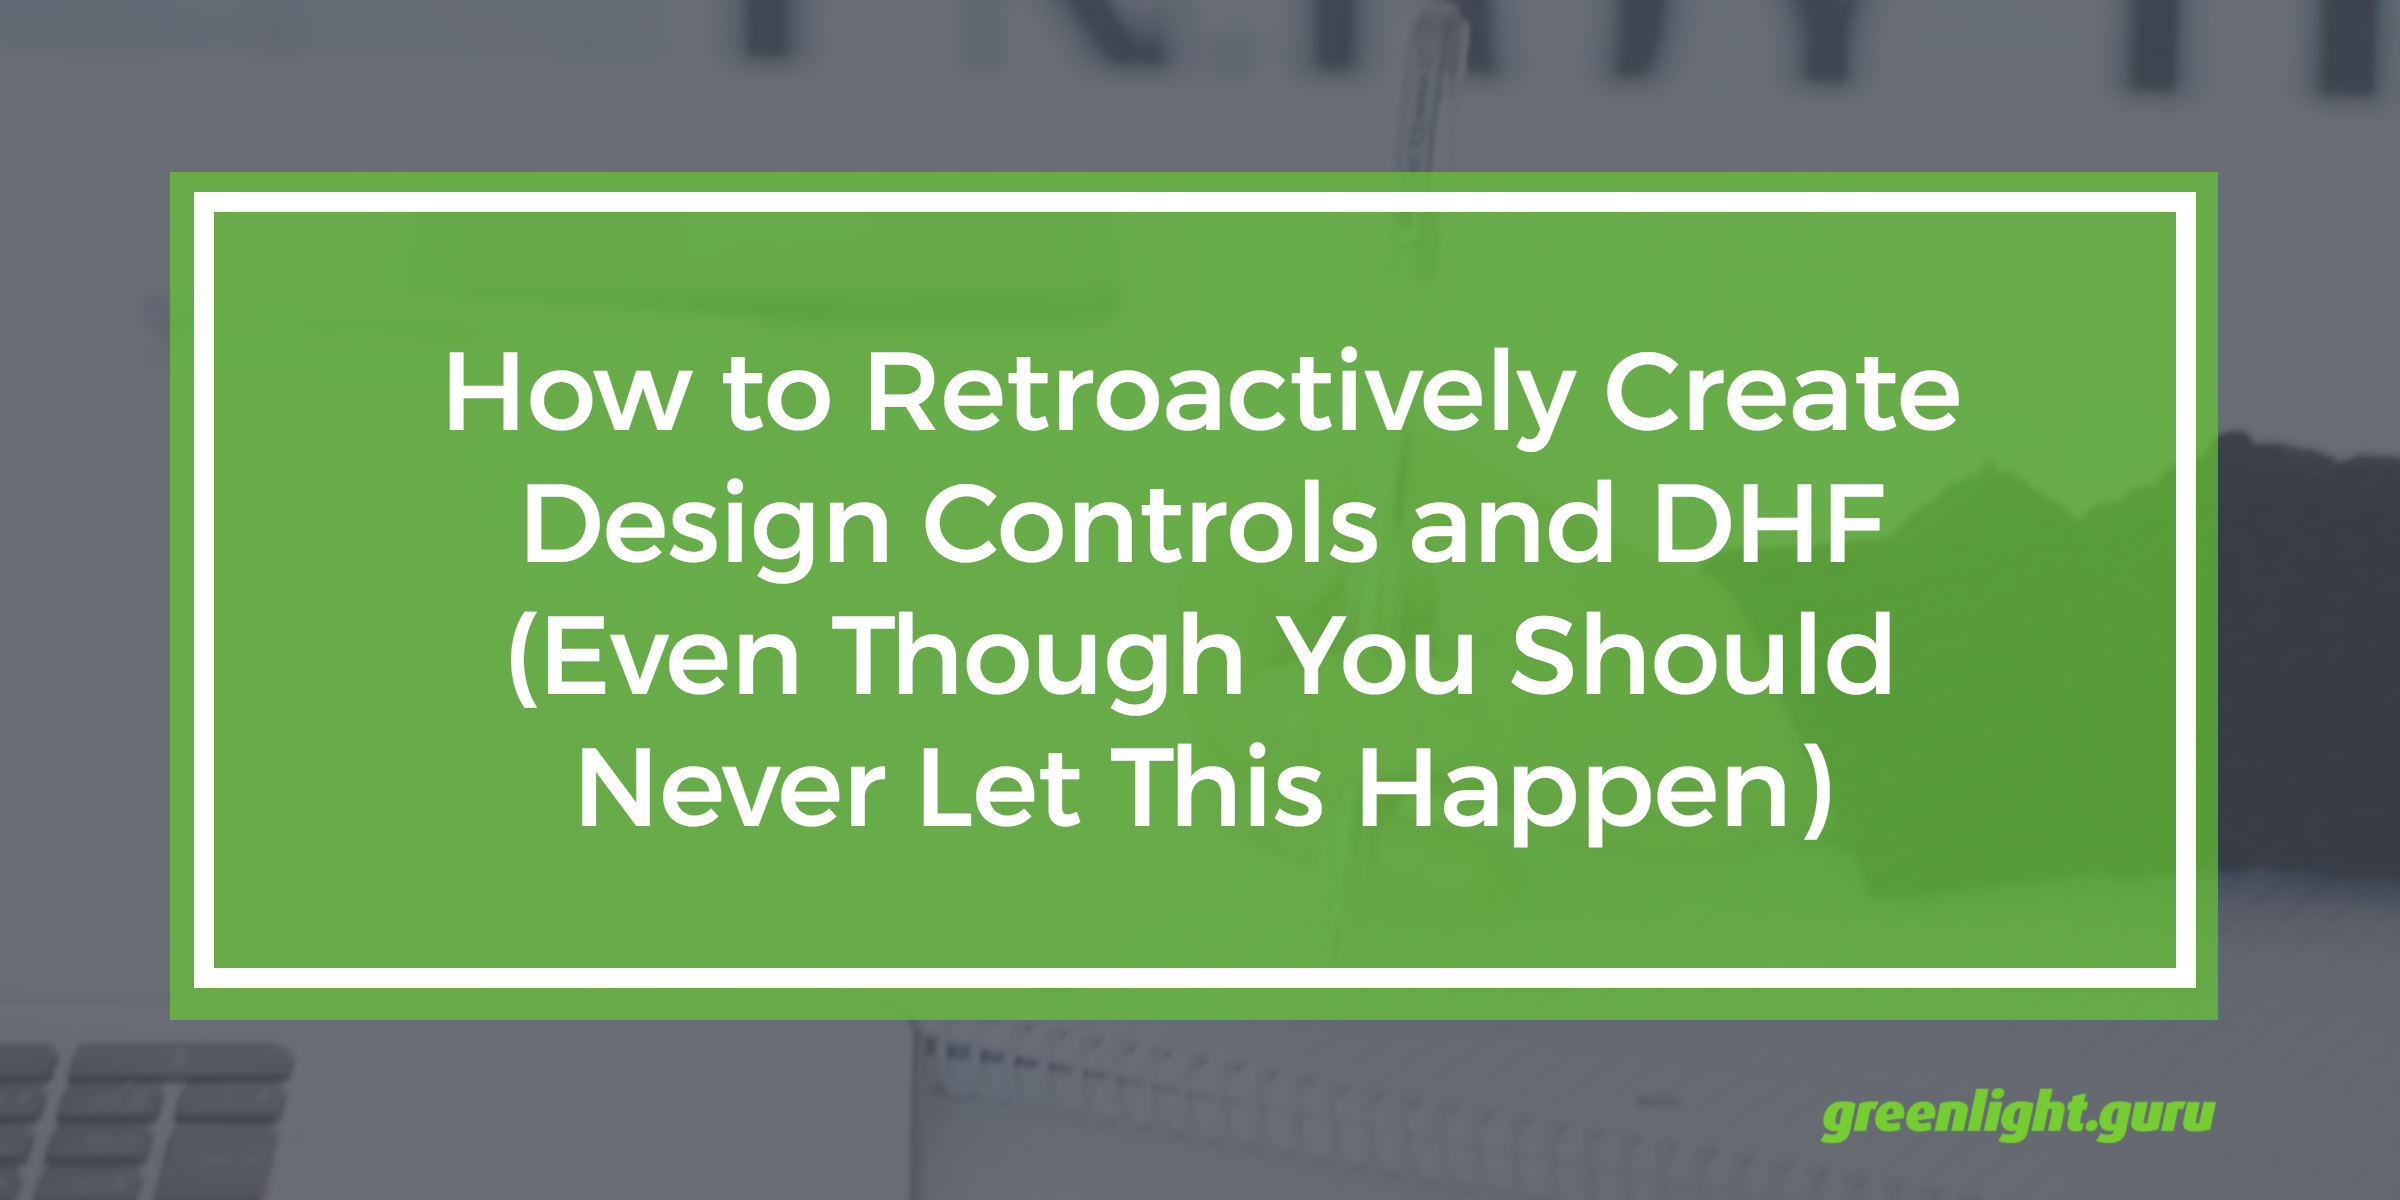 How to Retroactively Create Design Controls and DHF (Even Though You Should Never Let This Happen) - Featured Image